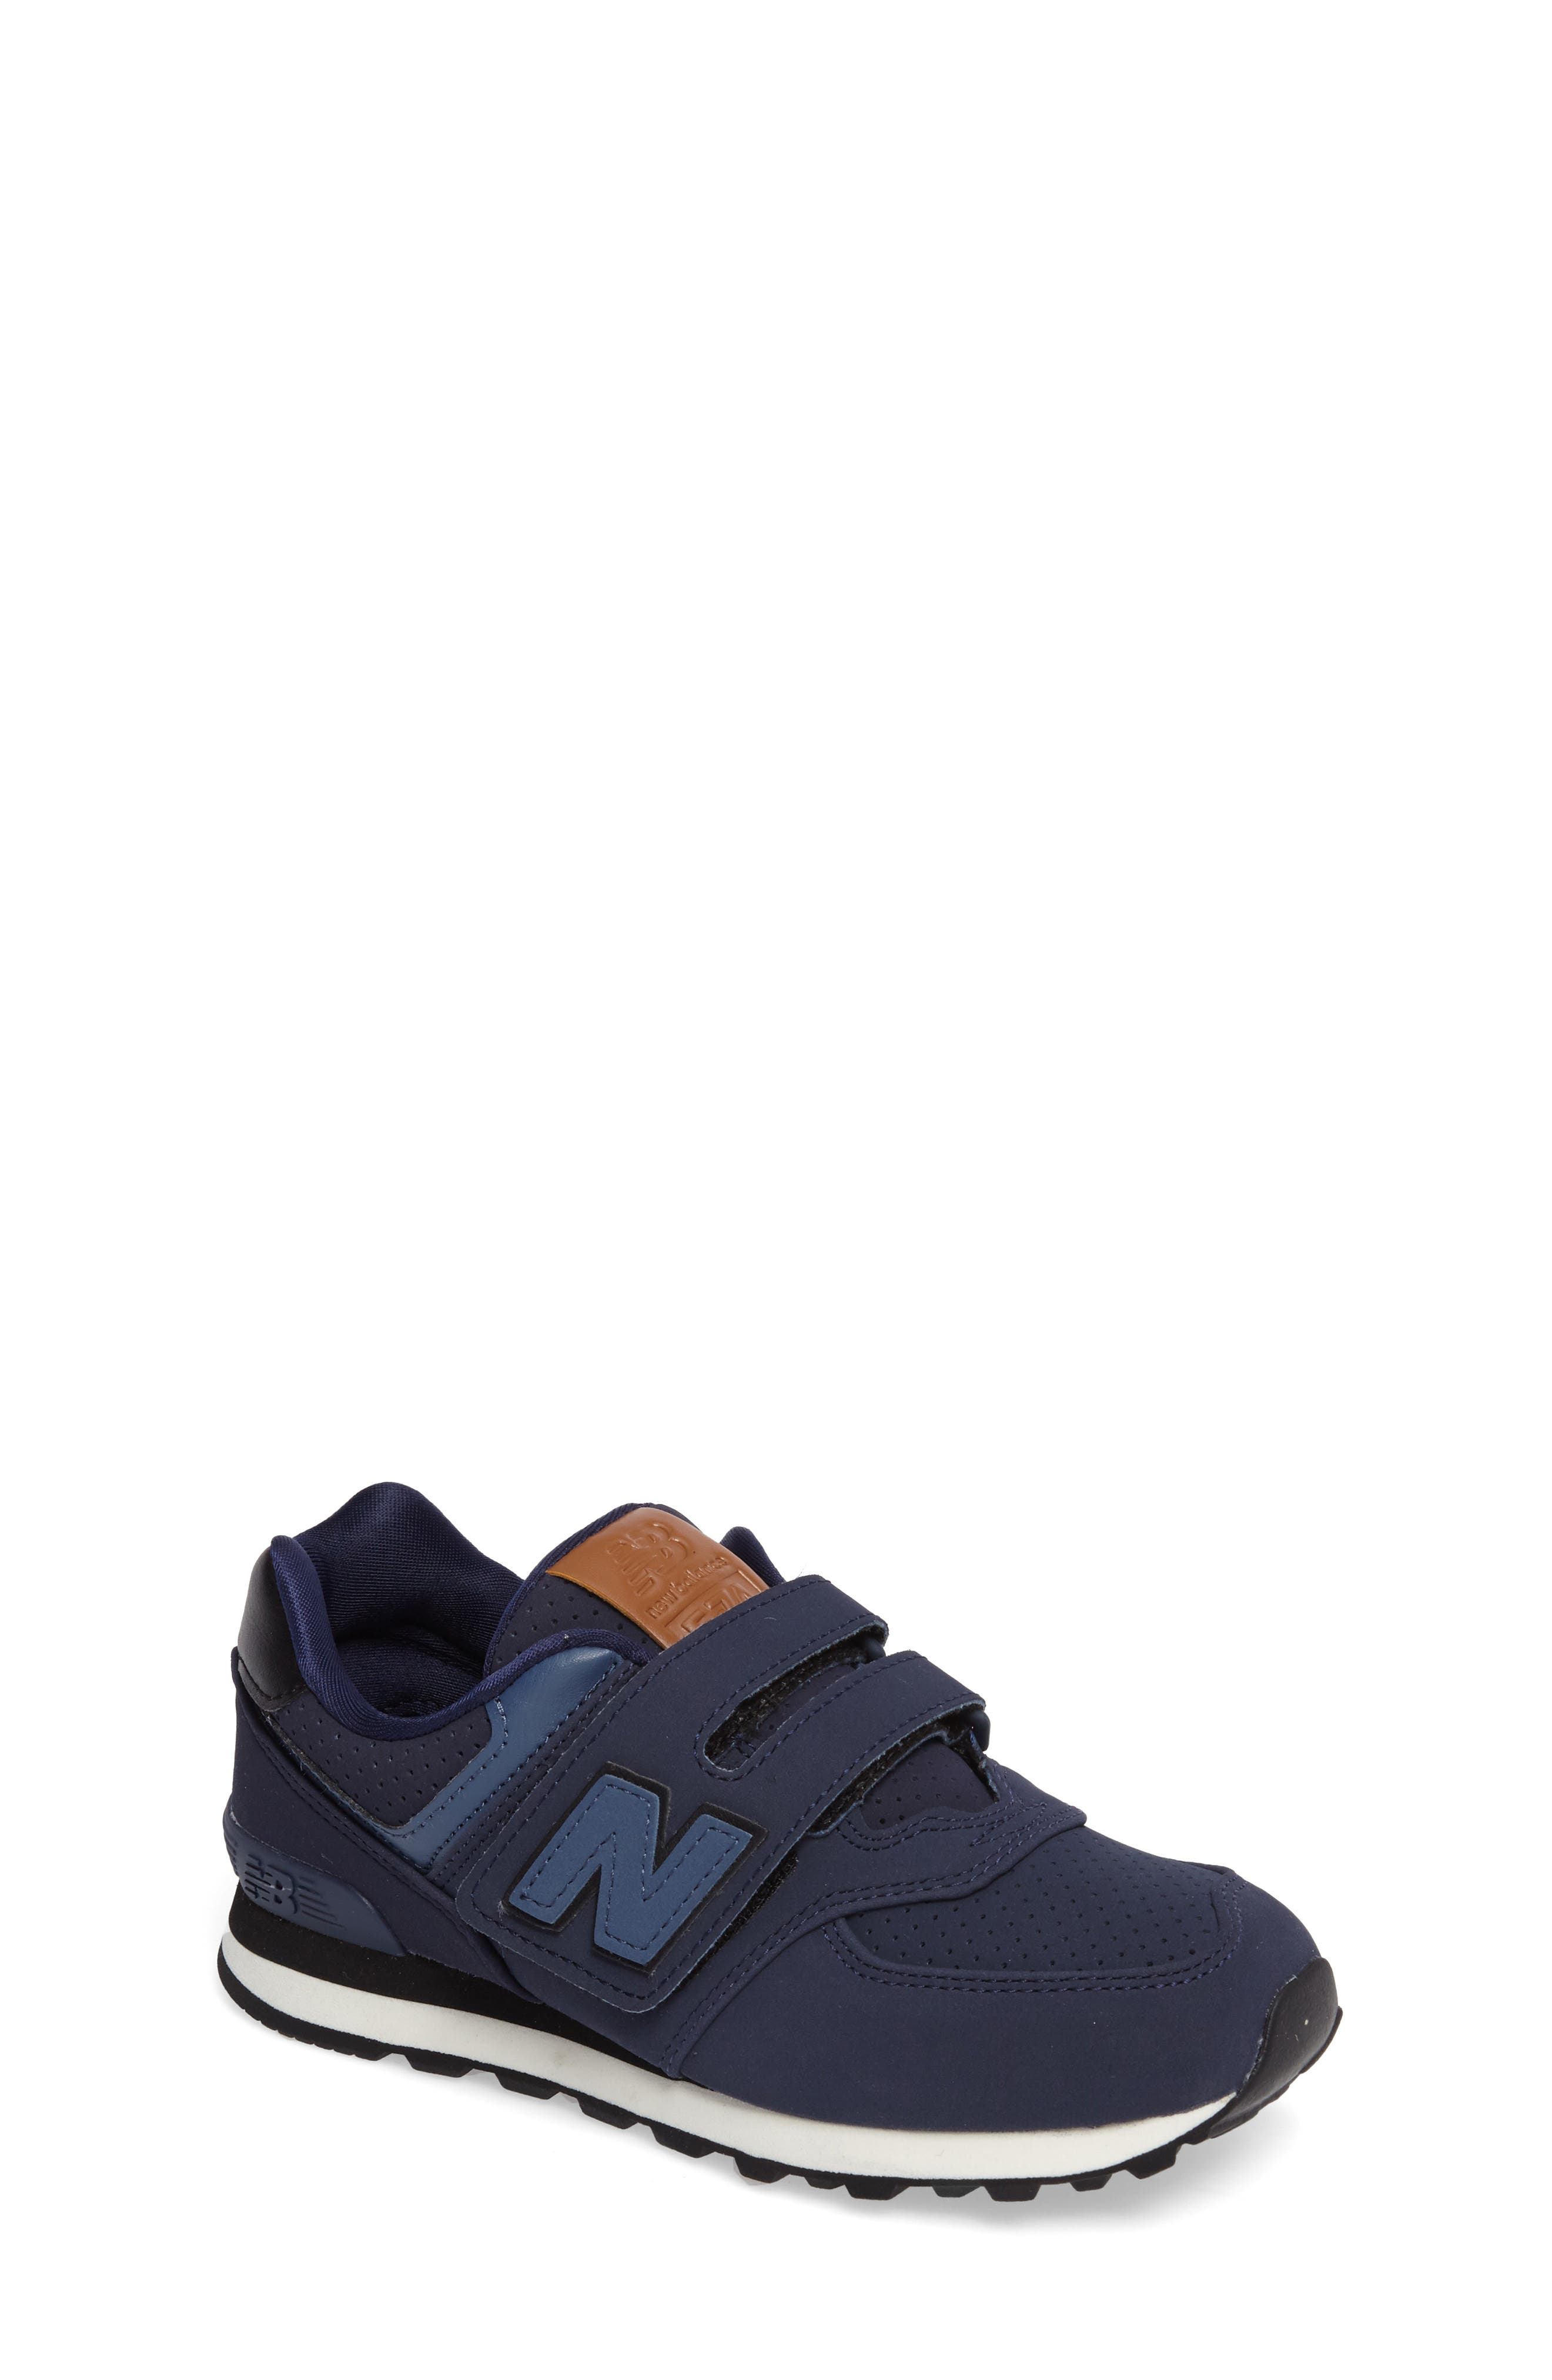 New Balance 574 Sneaker (Baby, Walker, Toddler & Little Kid)